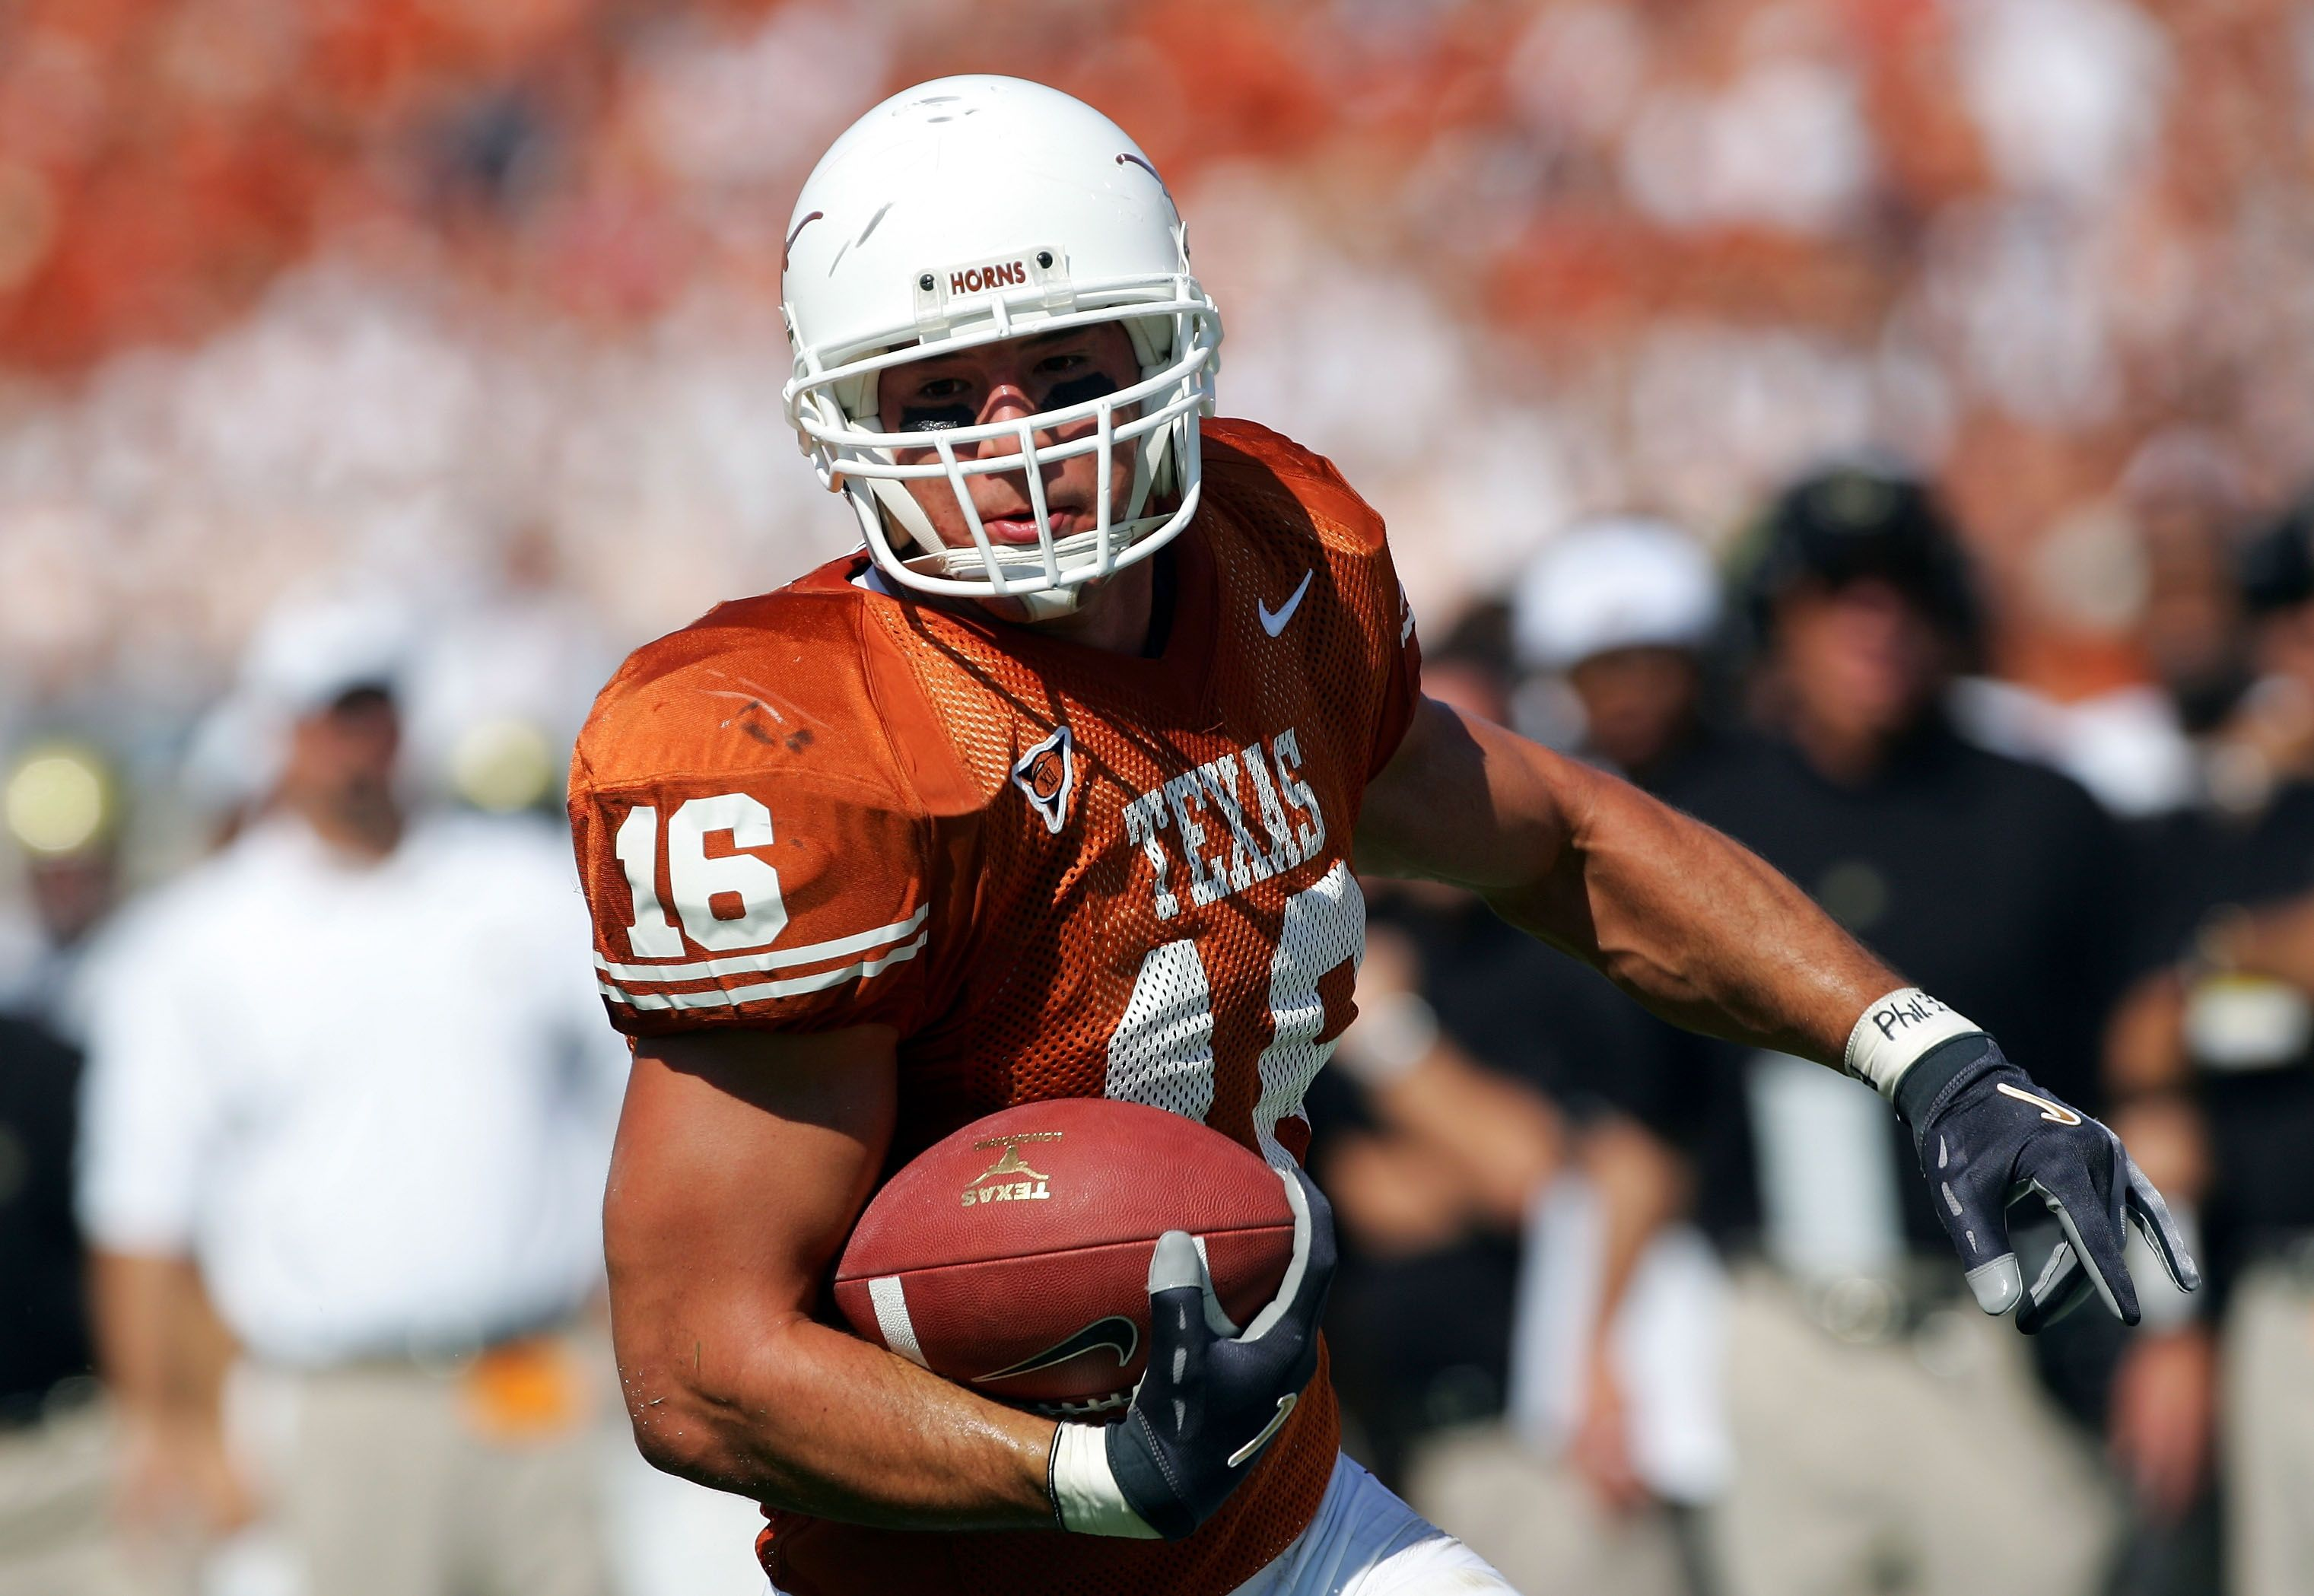 College Football The All Time 50 Greatest Texas Longhorns In 2020 Texas Longhorns Football Football Texas Longhorns